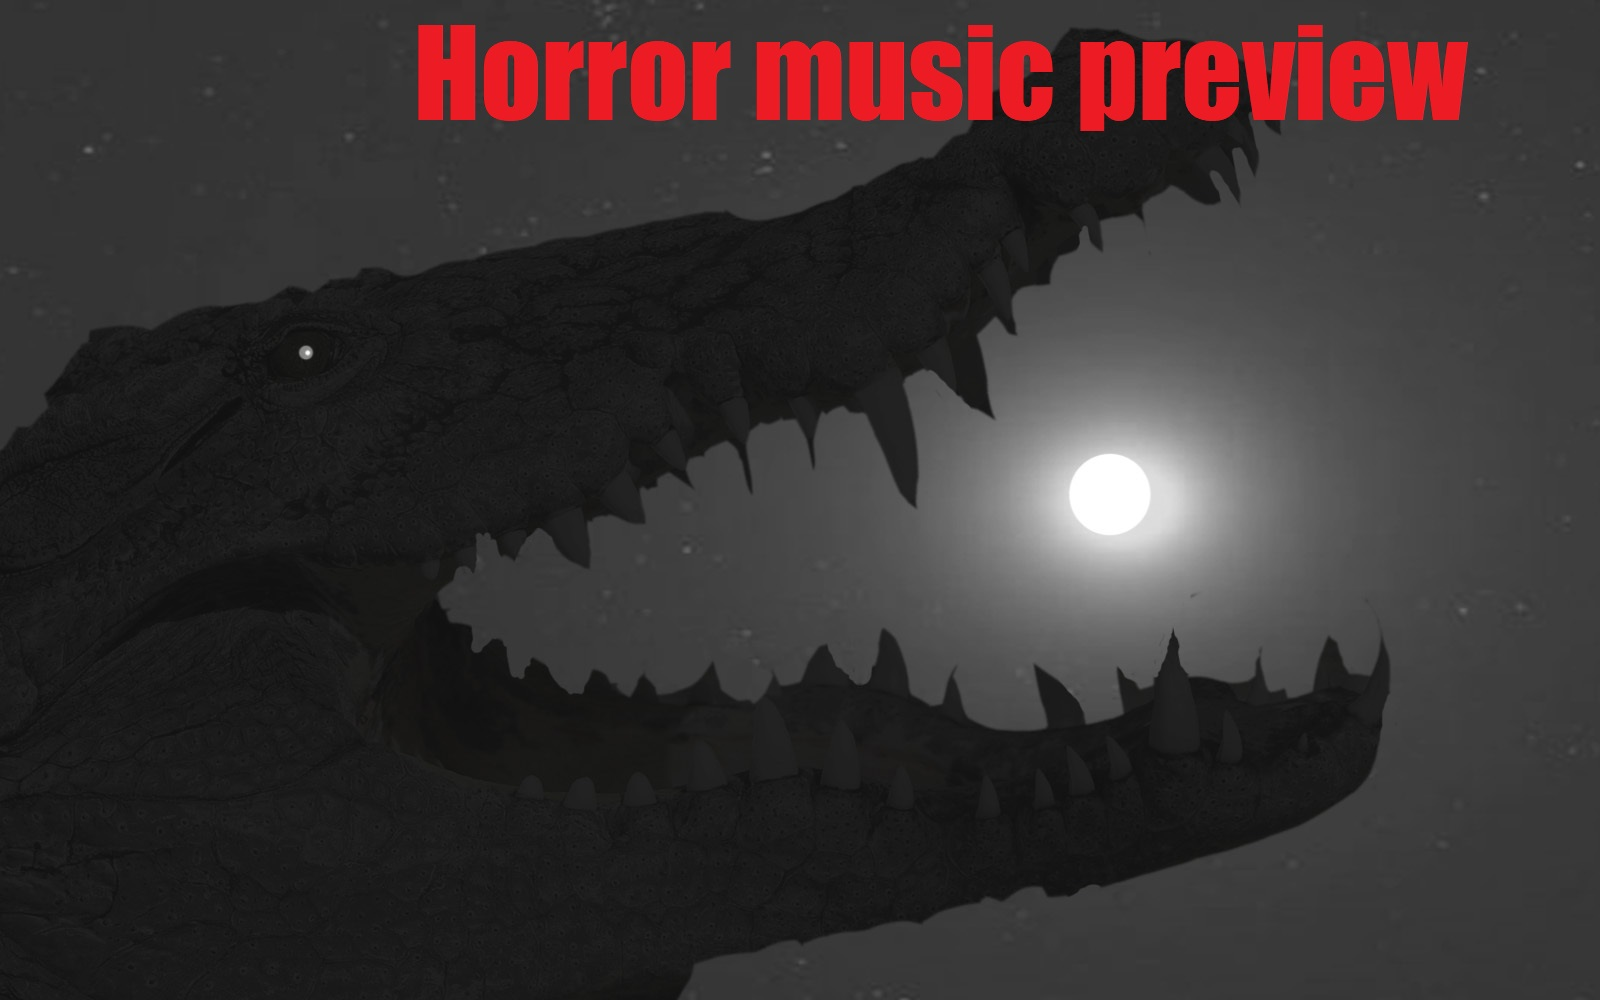 Horror music preview